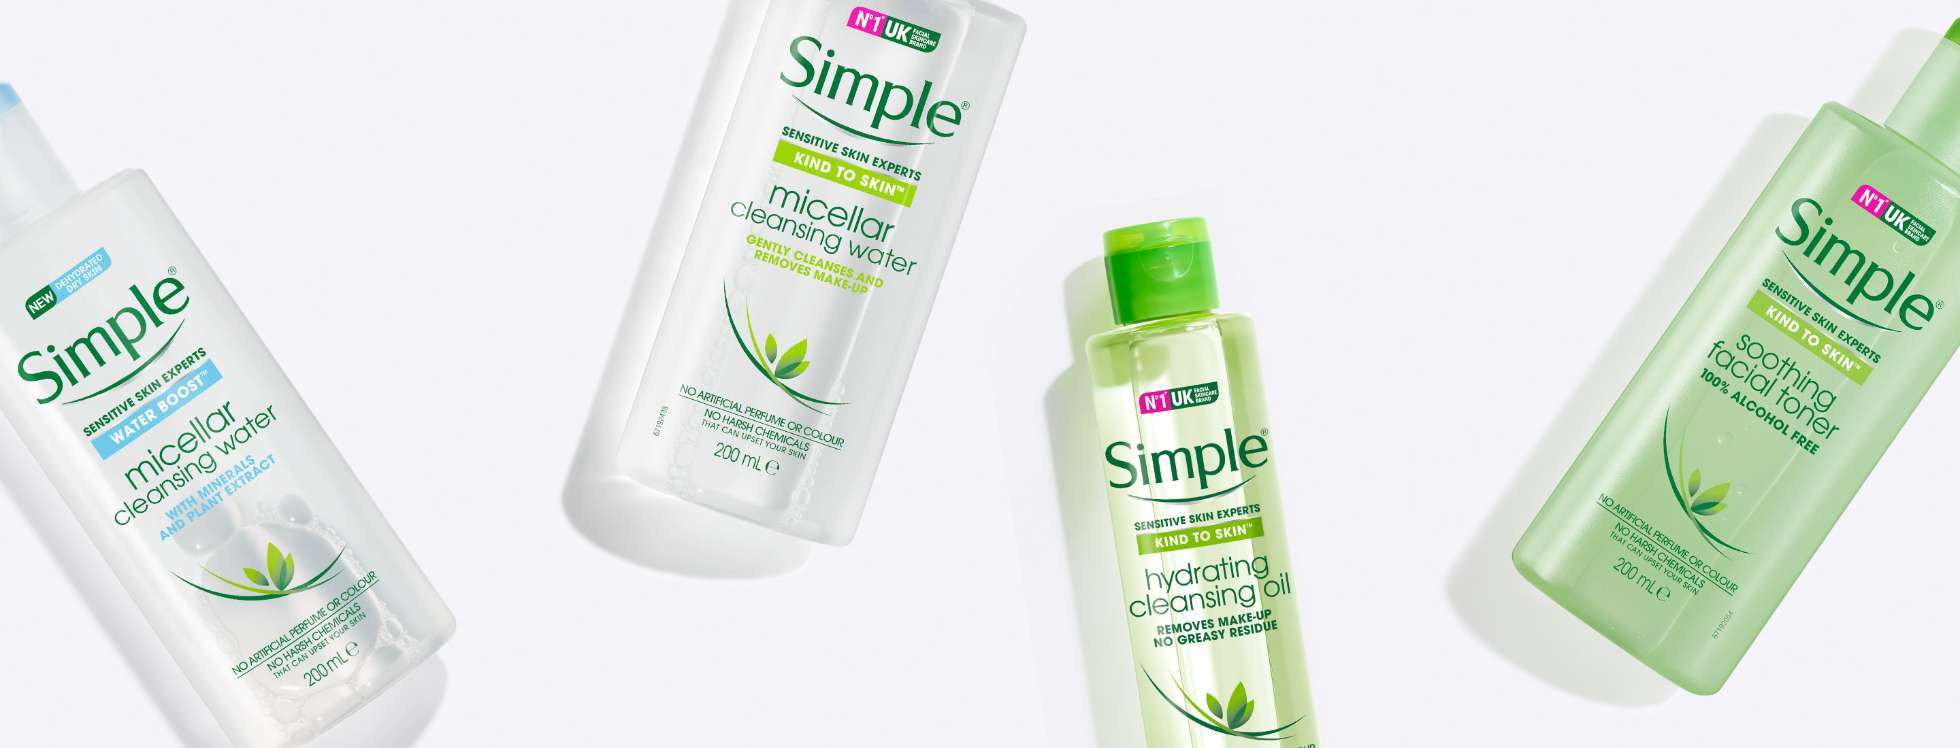 Simple cleanser and  toner BANNER